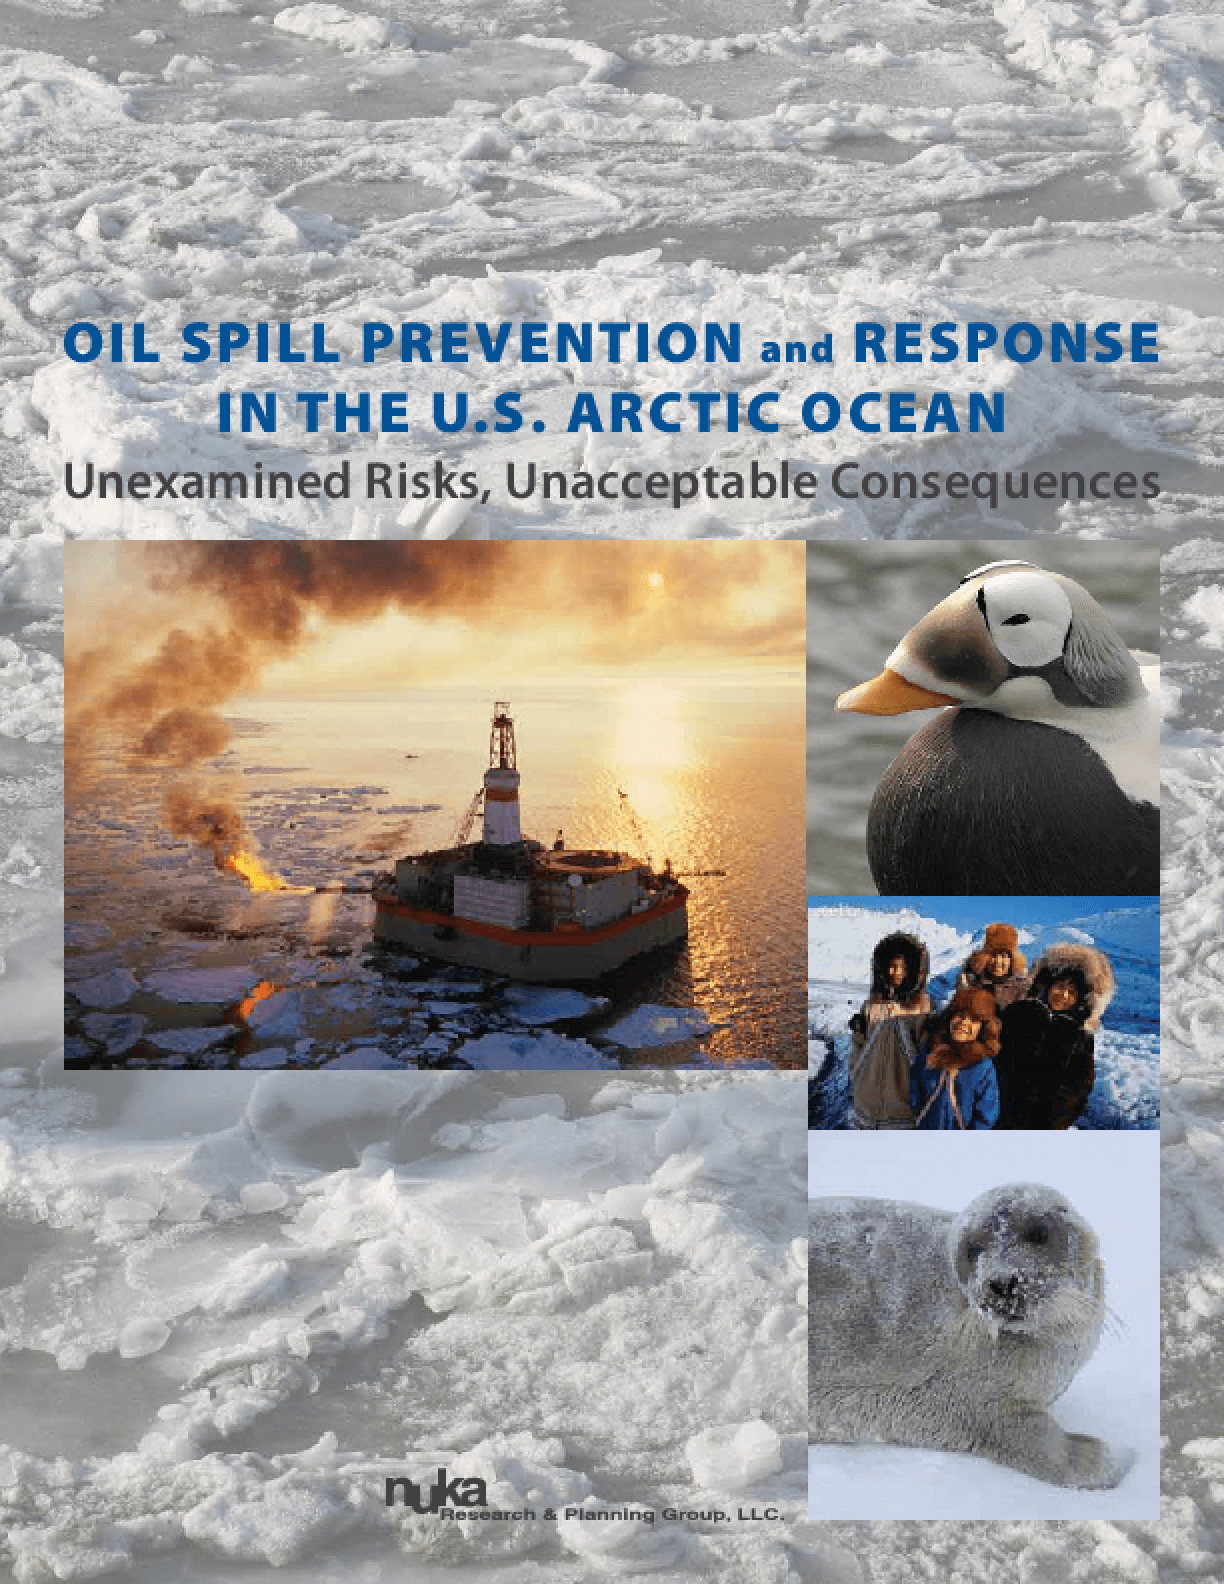 Oil Spill Prevention and Response in the U.S. Arctic Ocean: Unexamined Risks, Unacceptable Consequences